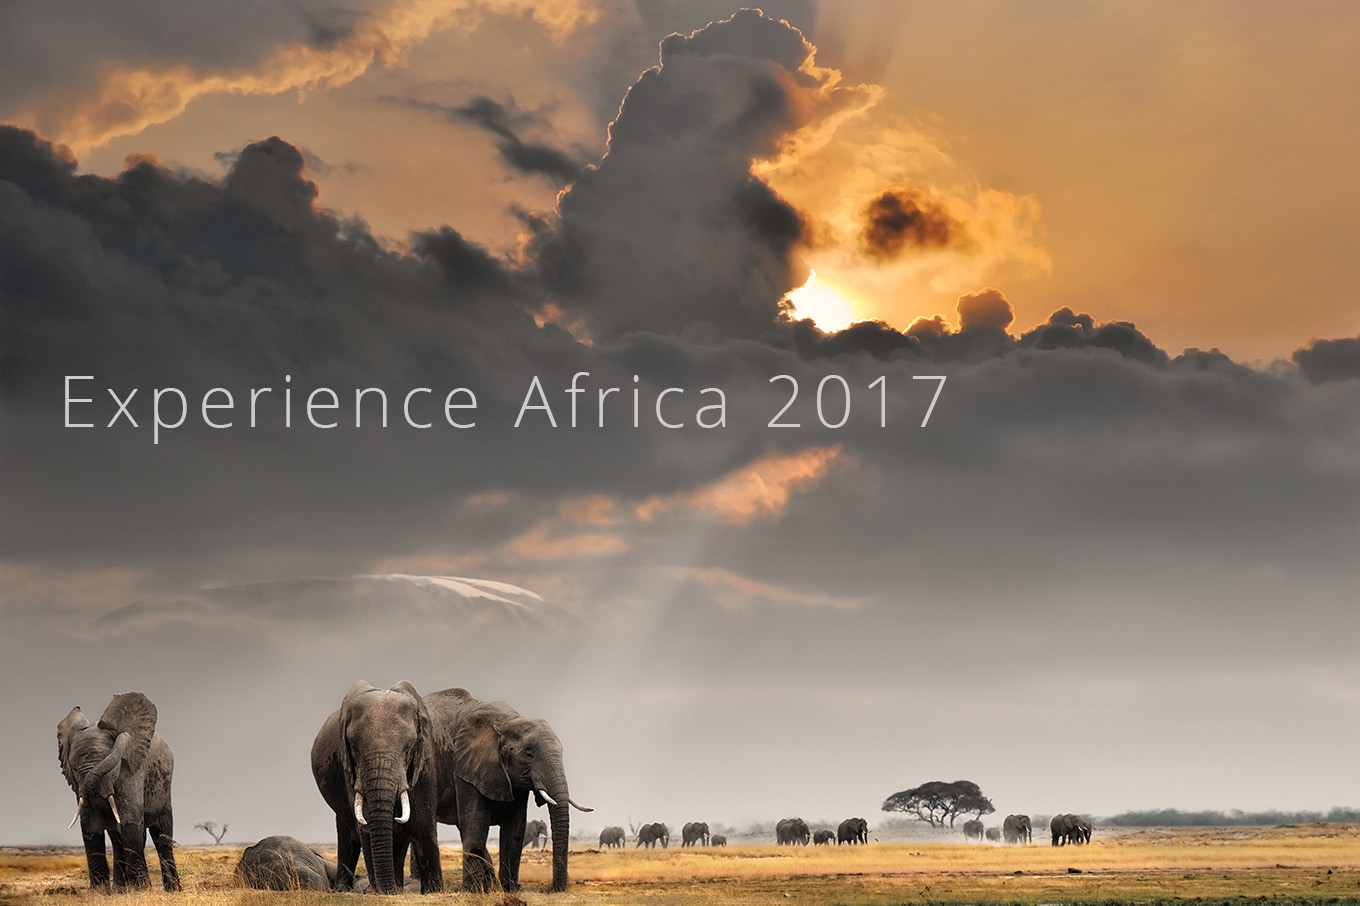 expereince_africa1_2017